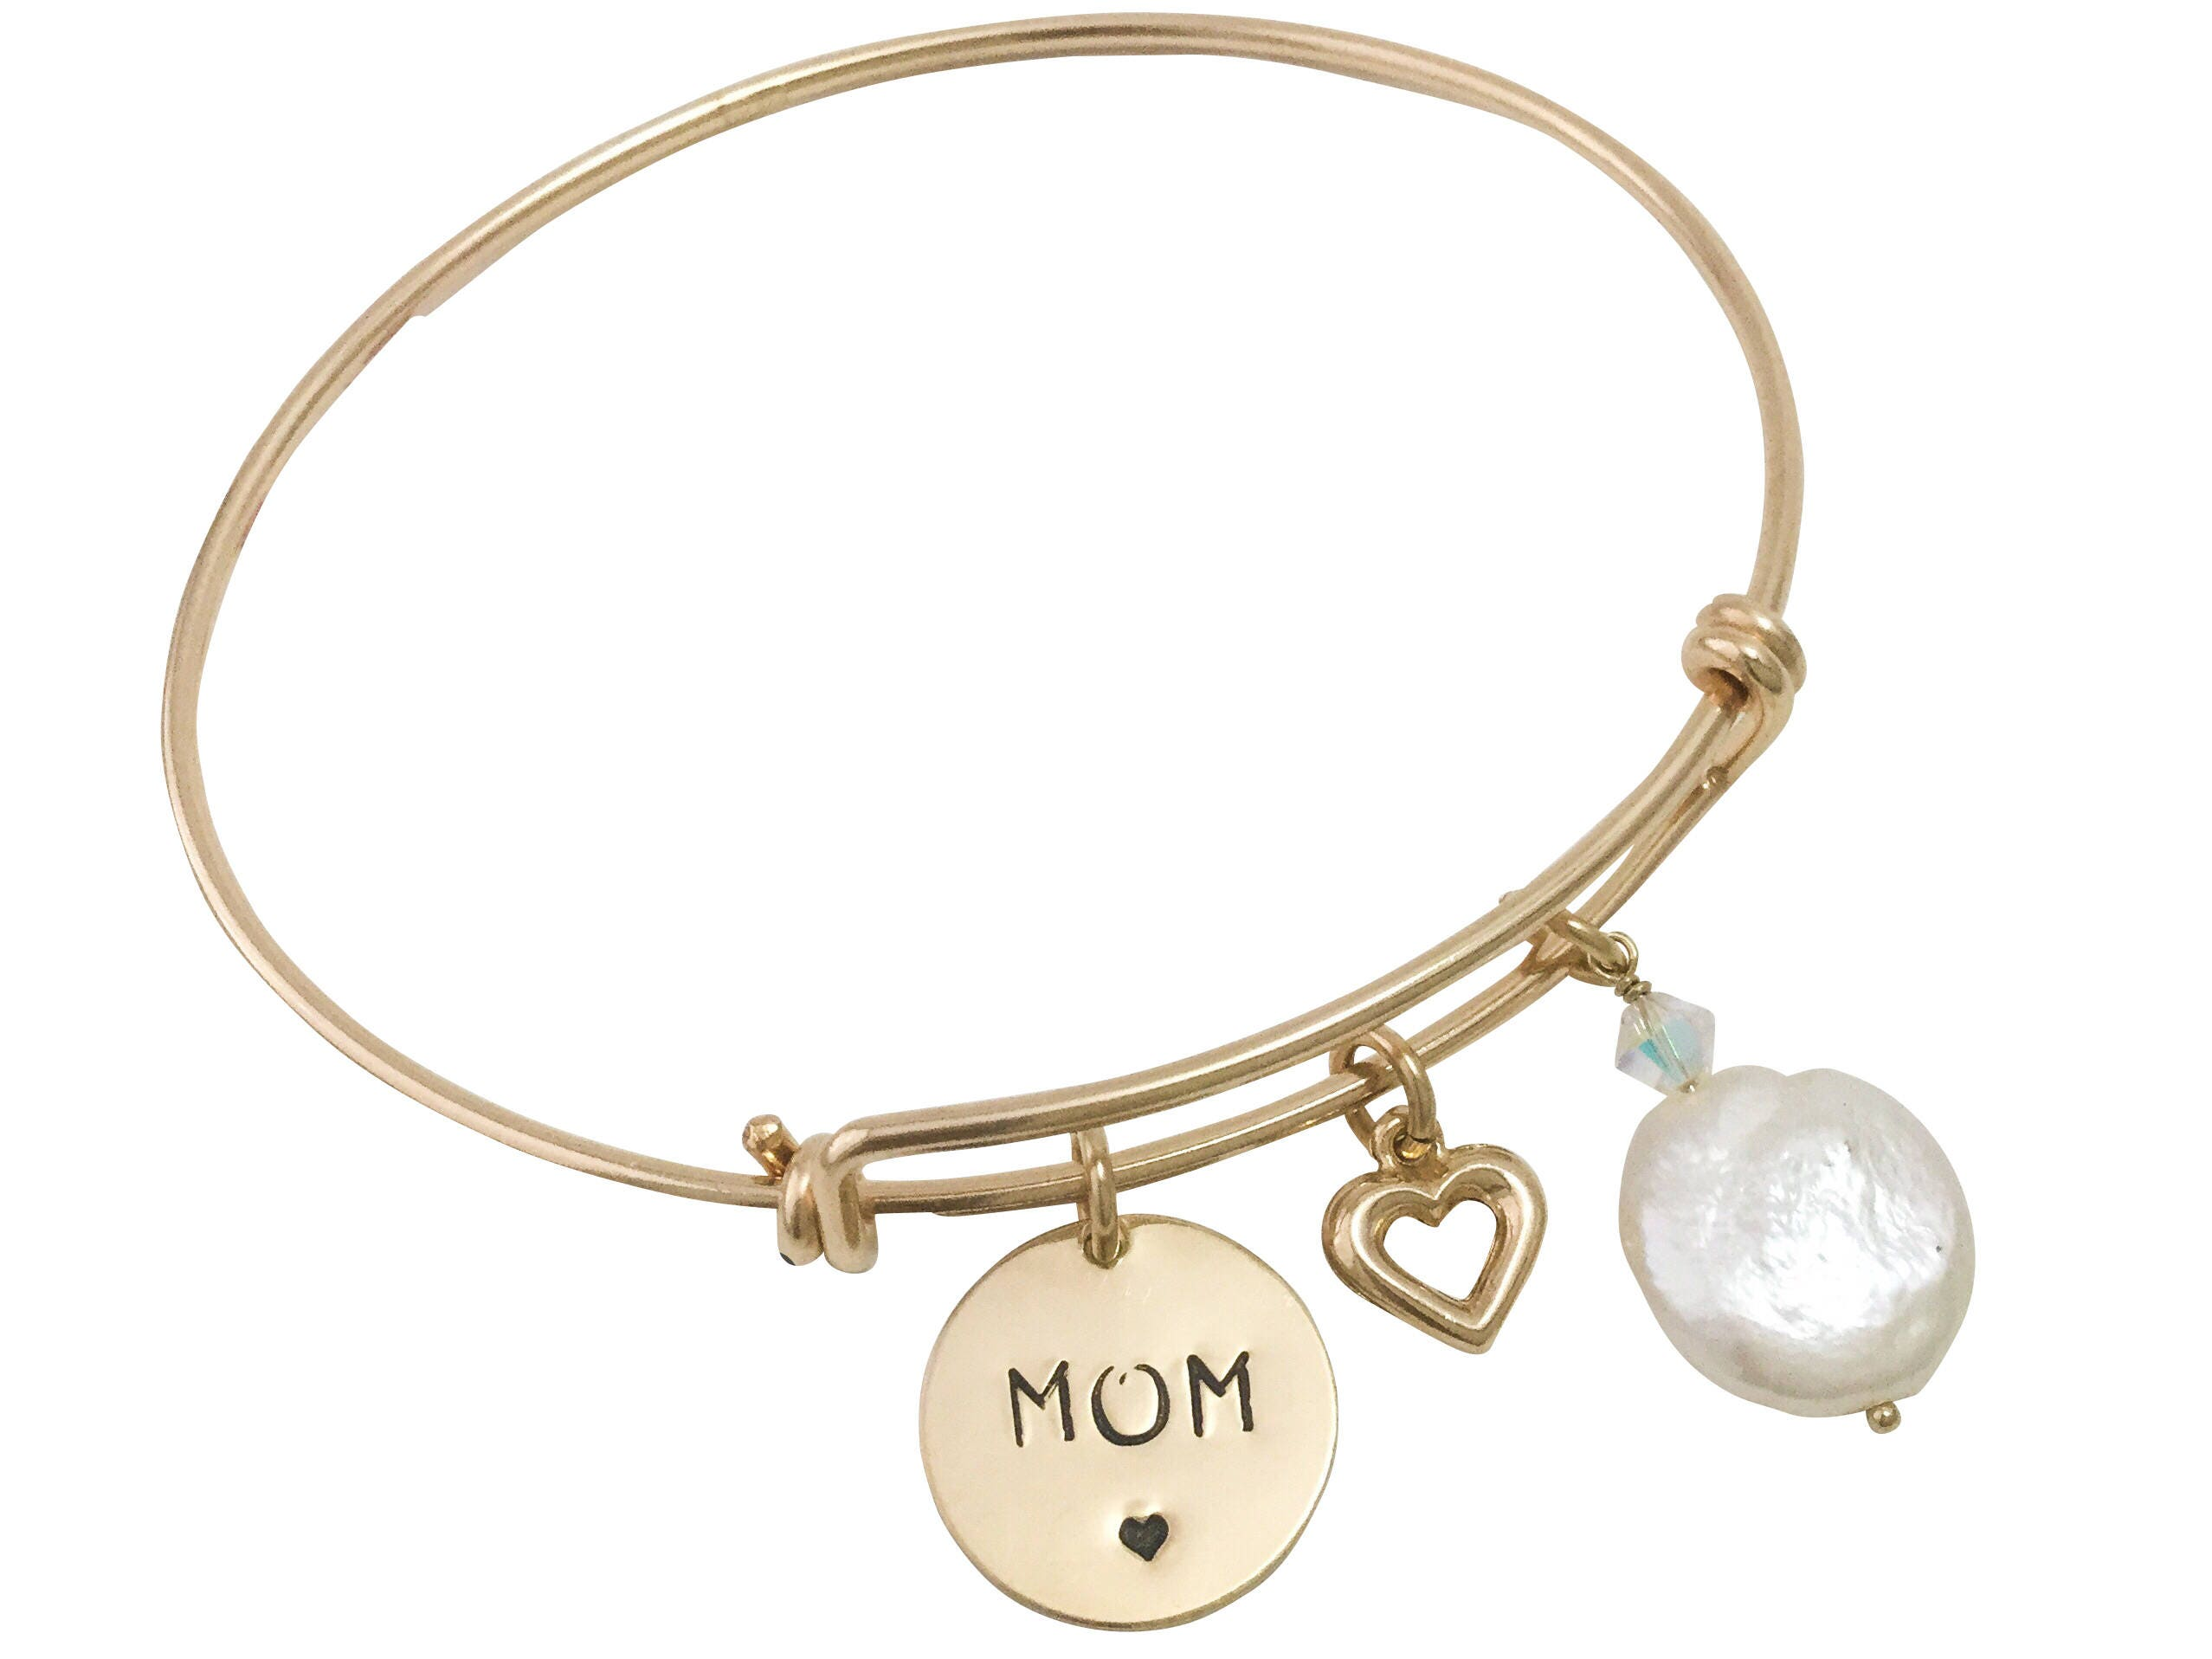 mothers for elements unique good day gift you wood green why bracelet mother are jewelry about five s